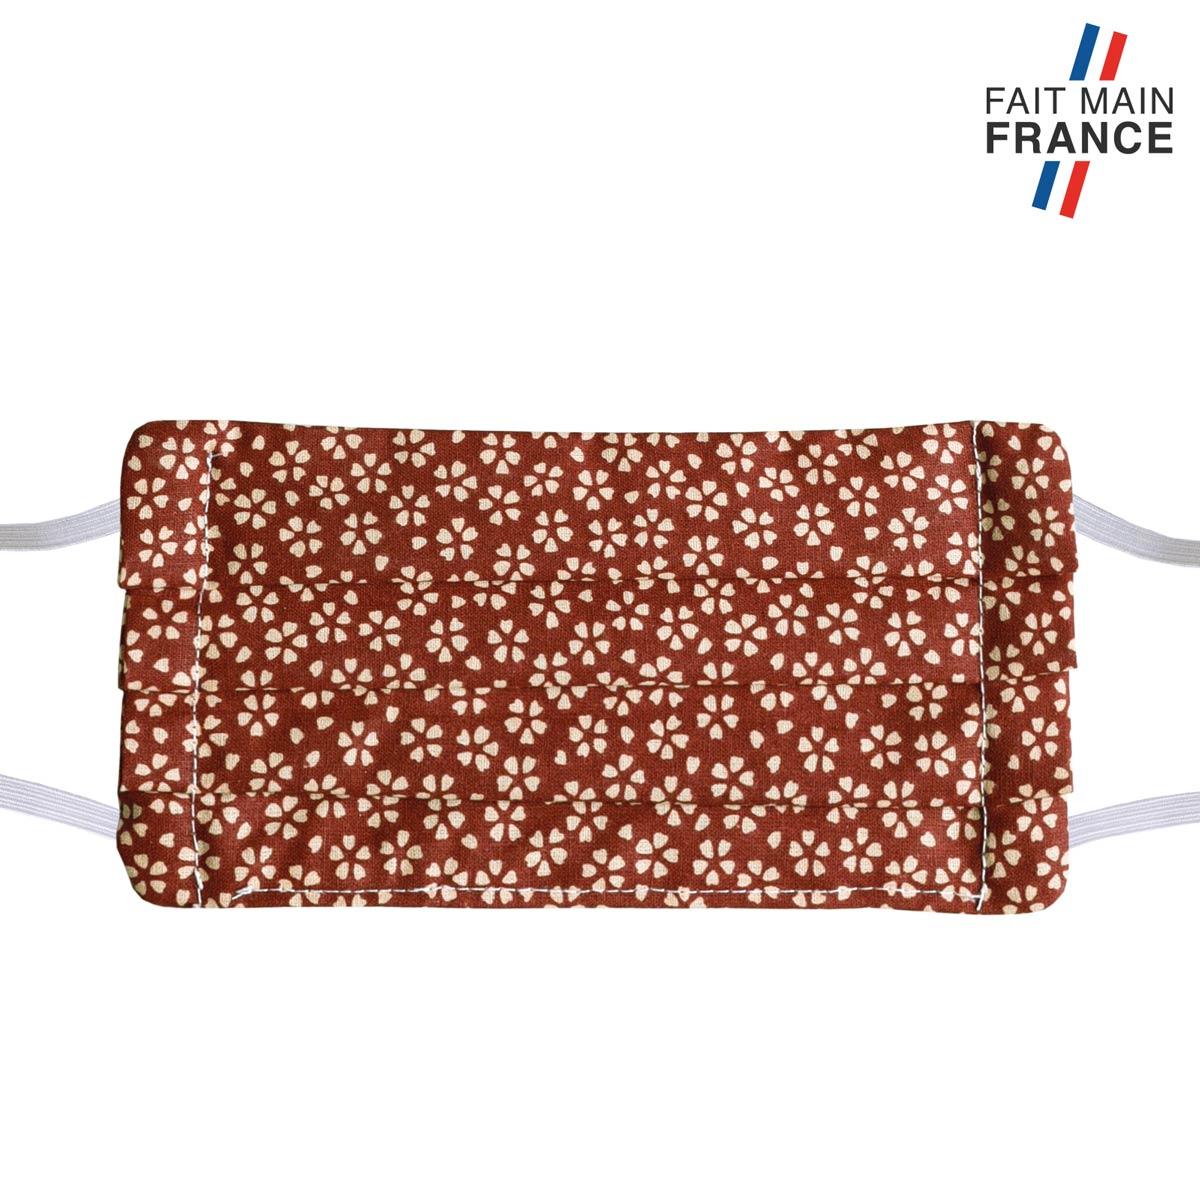 AT-06127-A12-Masque-lavable-tissu-liberty-rouge